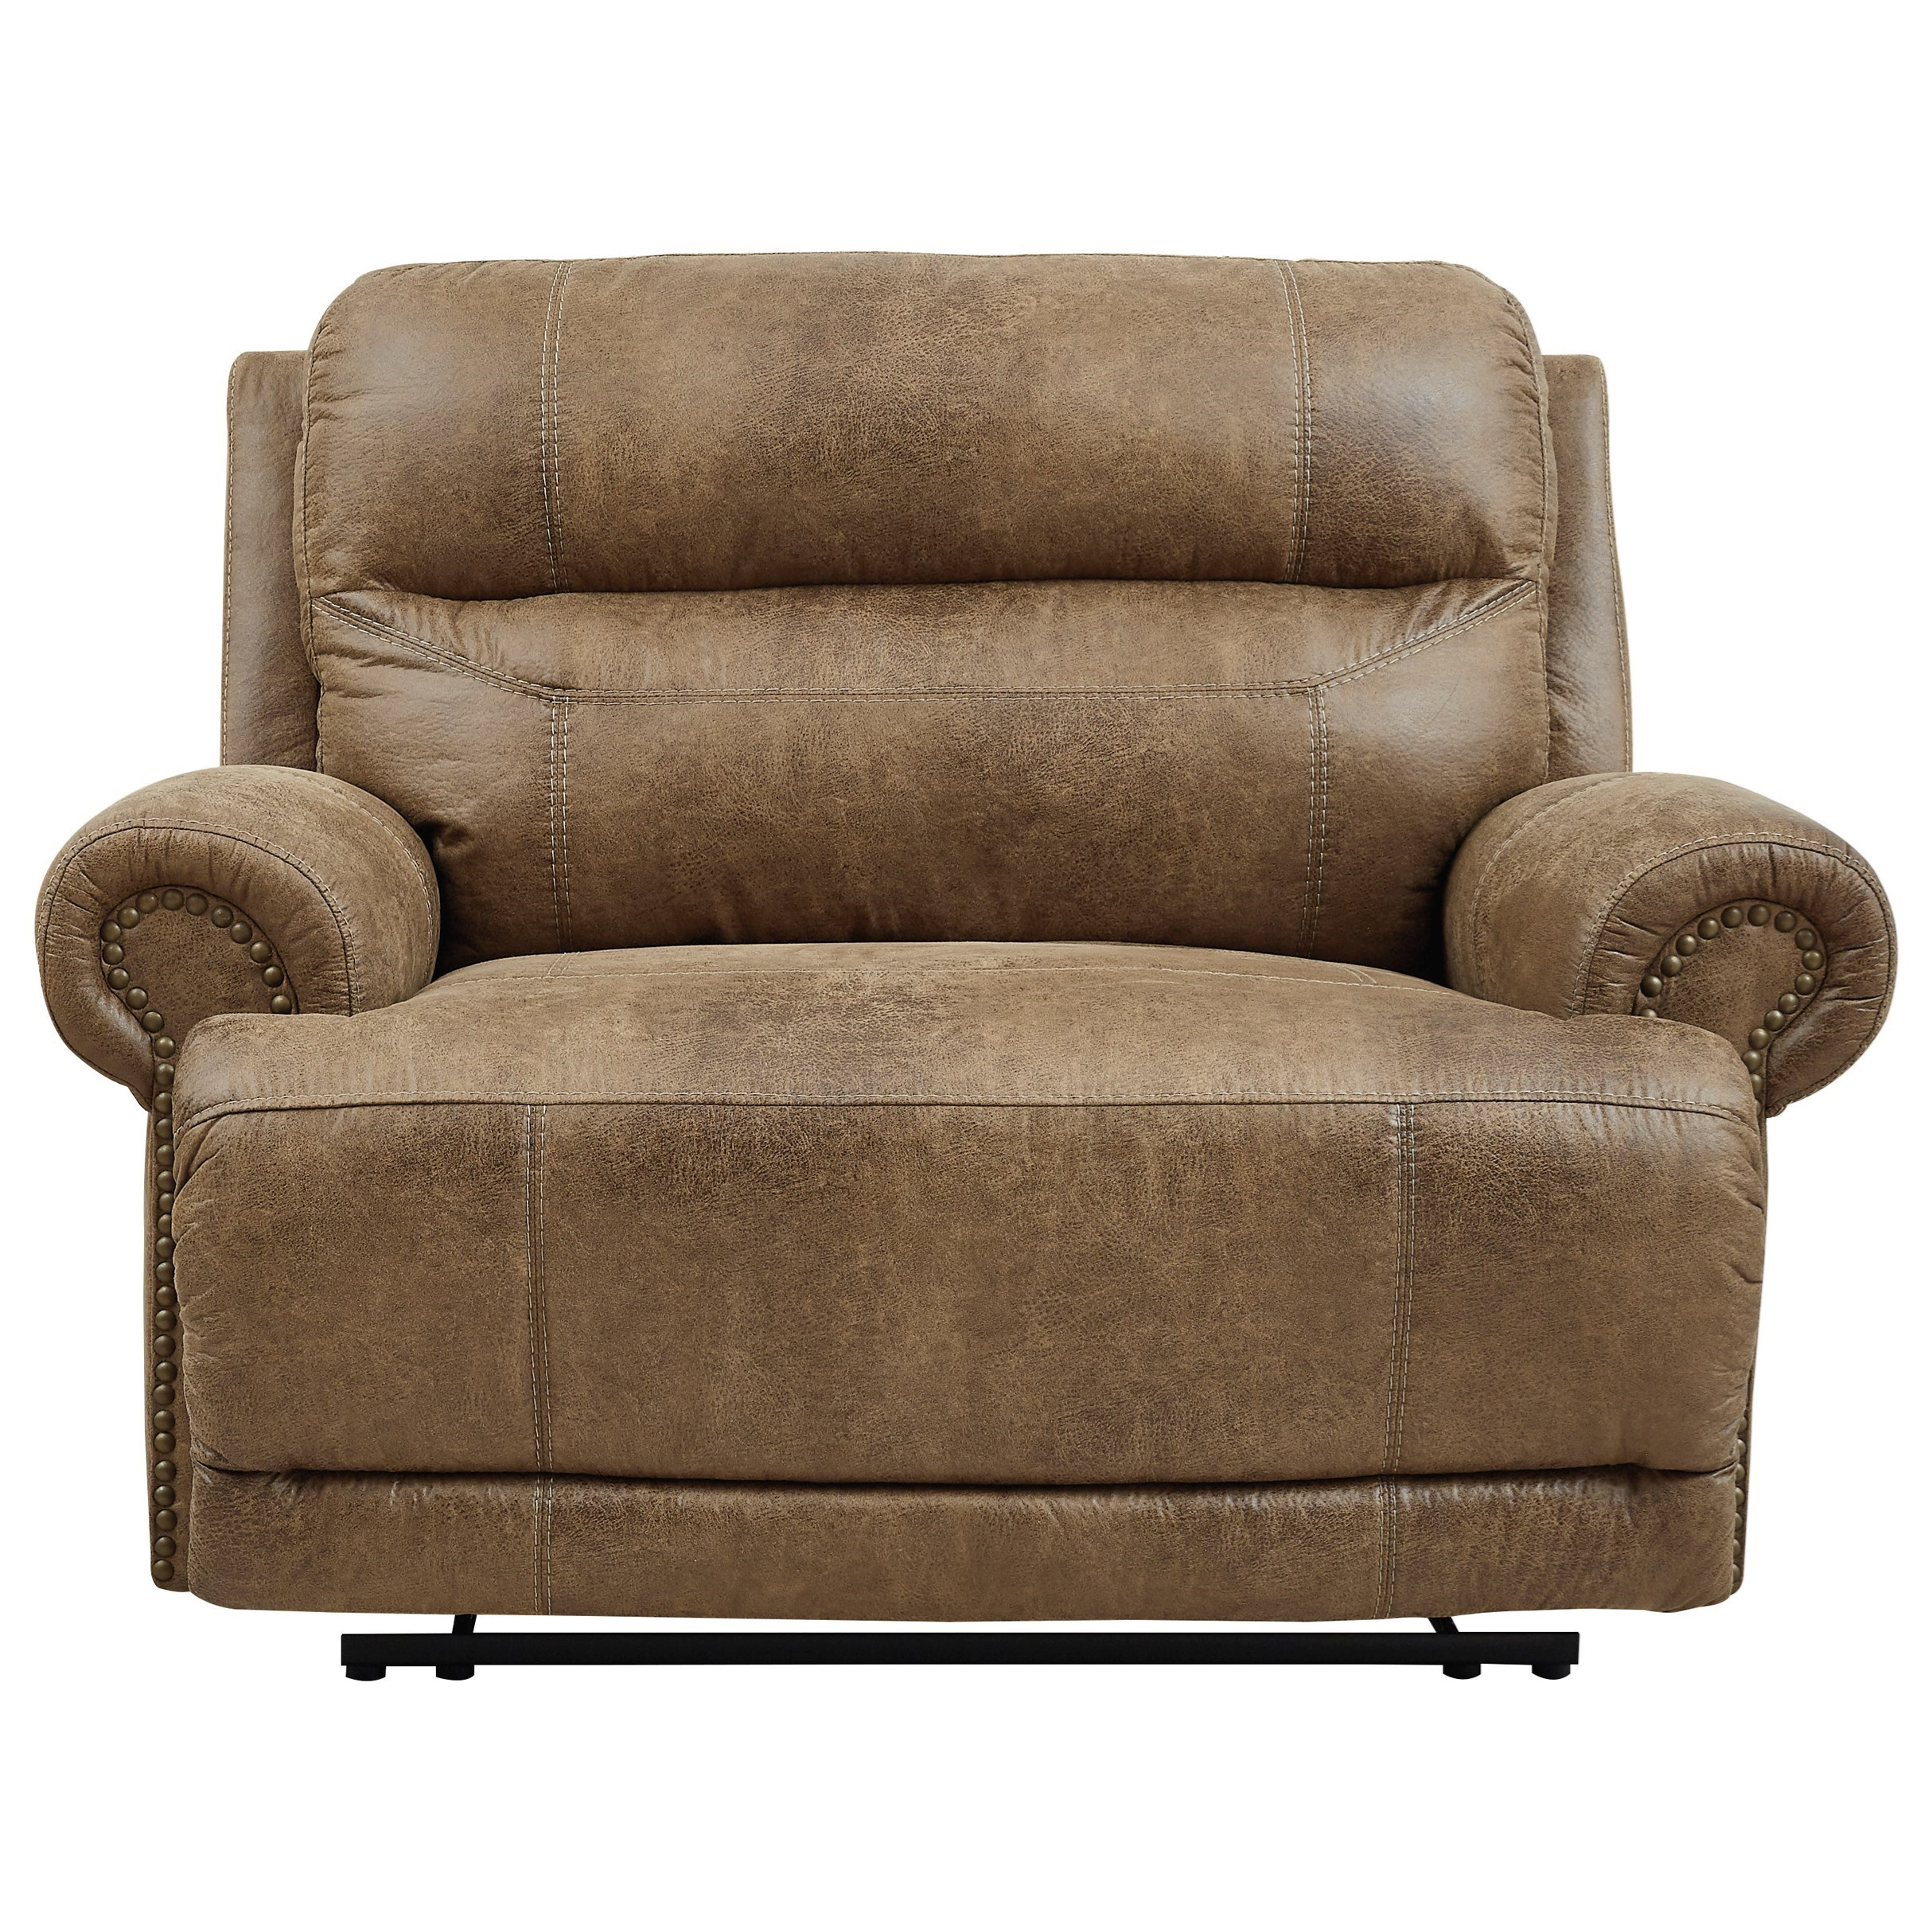 Grearview Oversized Power Recliner by Ashley (Signature Design) at Johnny Janosik